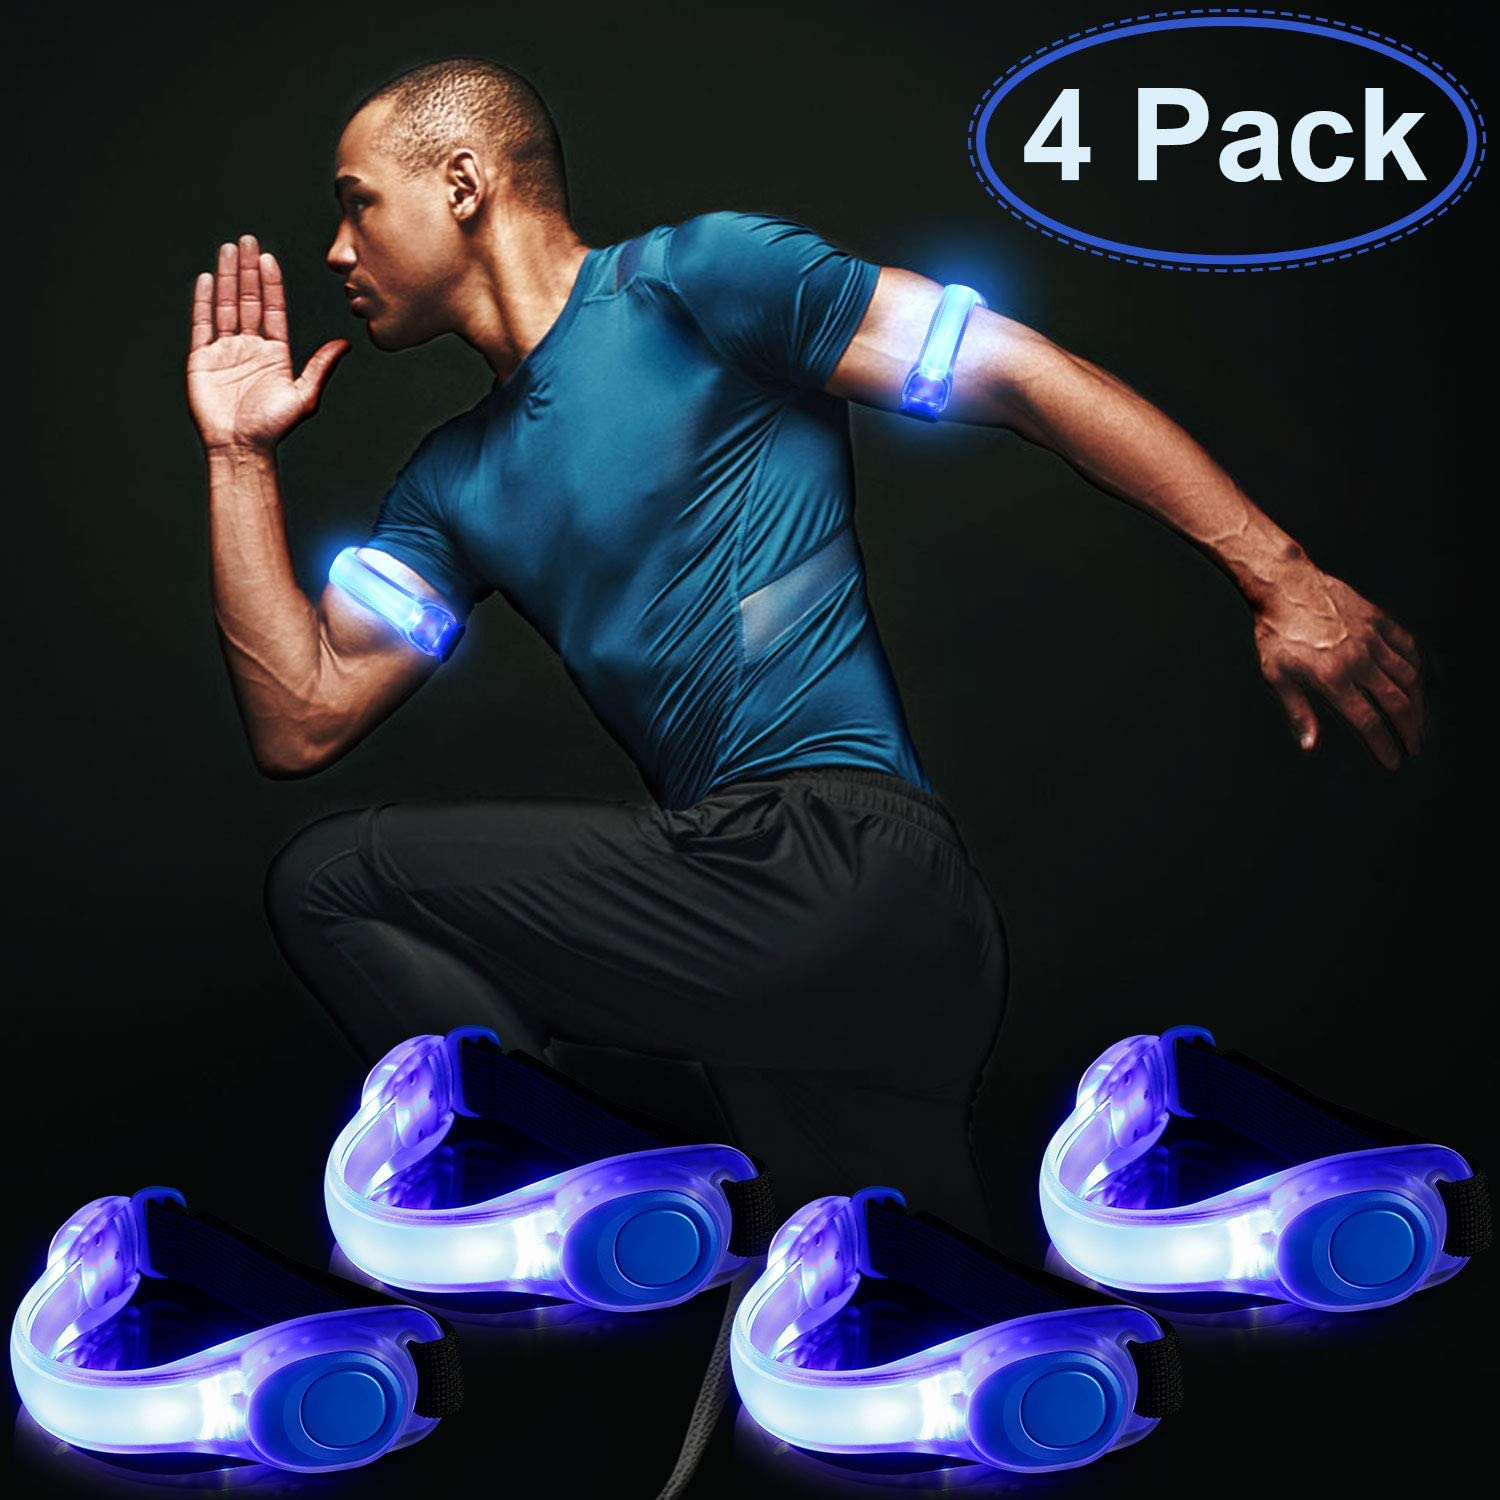 Blulu 4 Pack LED Armband Reflective Bracelets Light up Band Adjustable Silicone Wristbands Waterproof Glow Armband Night Safety Lights for Men and Women Running Jogging Cycling, 8 Batteries Included